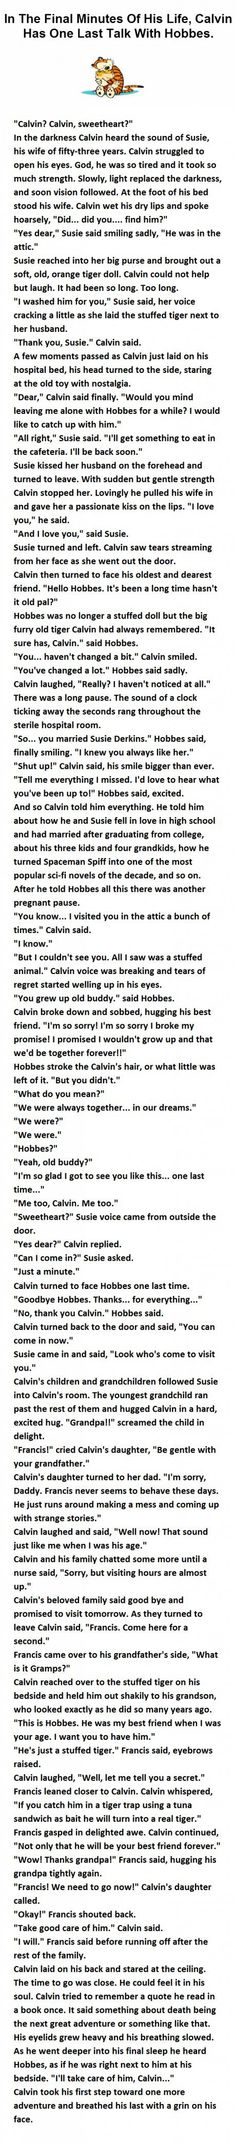 Feels - This guy just changed the way we see Calvin and Hobbes